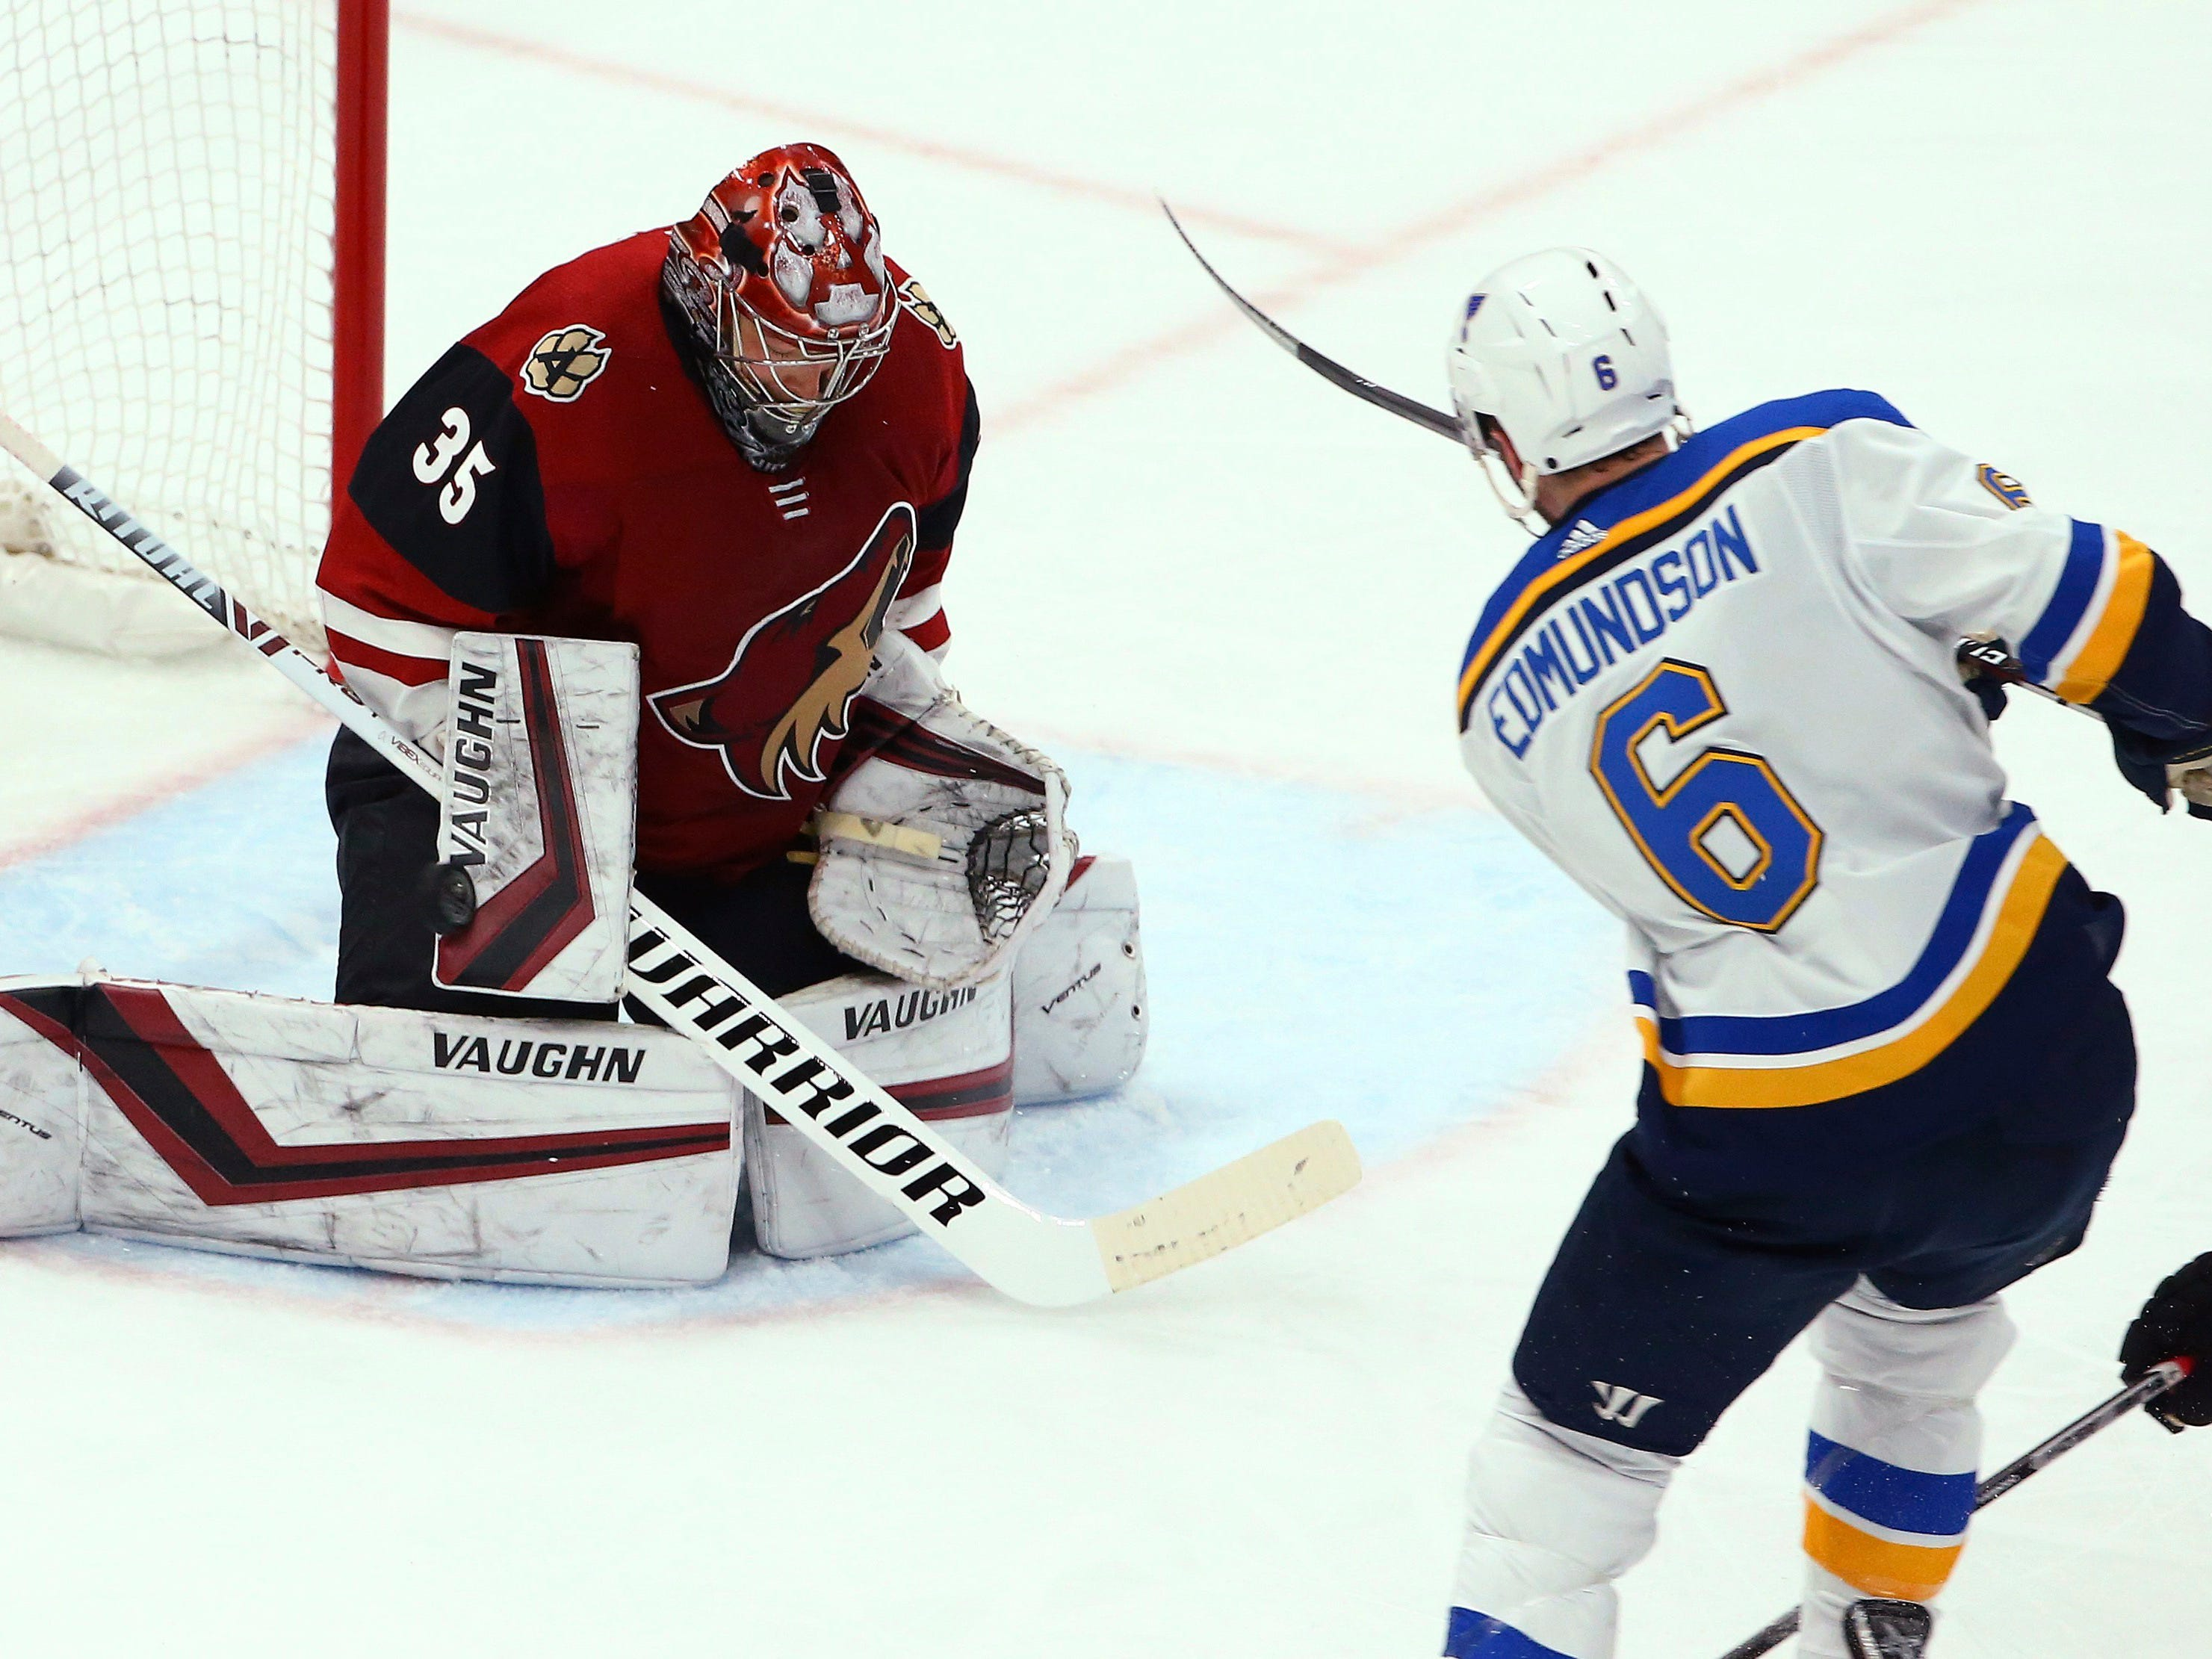 St. Louis Blues defenseman Joel Edmundson (6) sends the puck past Arizona Coyotes goaltender Darcy Kuemper (35) for a goal during the first period of an NHL hockey game Thursday, Feb. 14, 2019, in Glendale, Ariz.